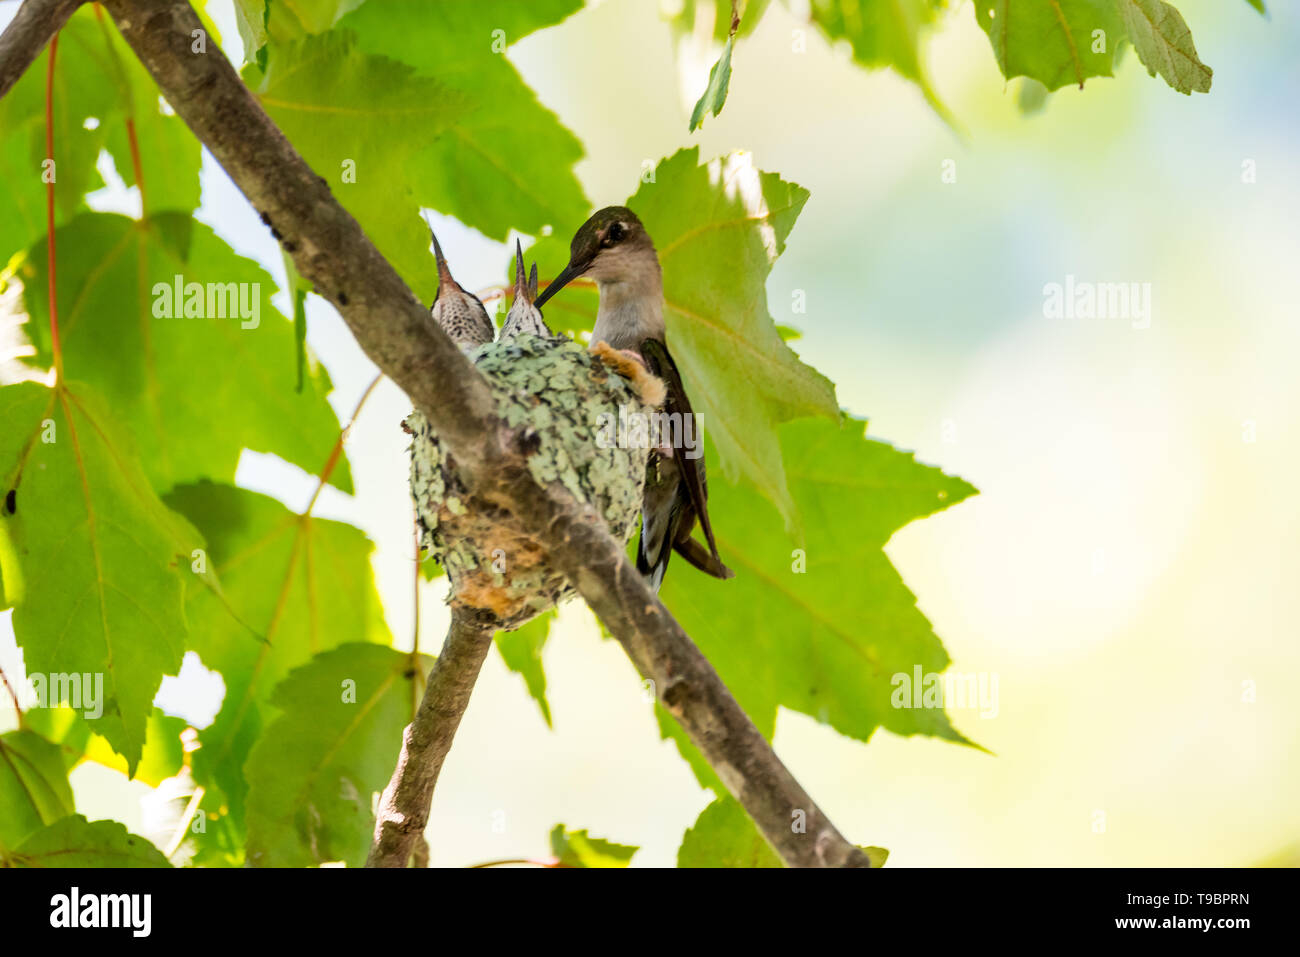 Mother hummingbird feeding two babies in her nest. - Stock Image